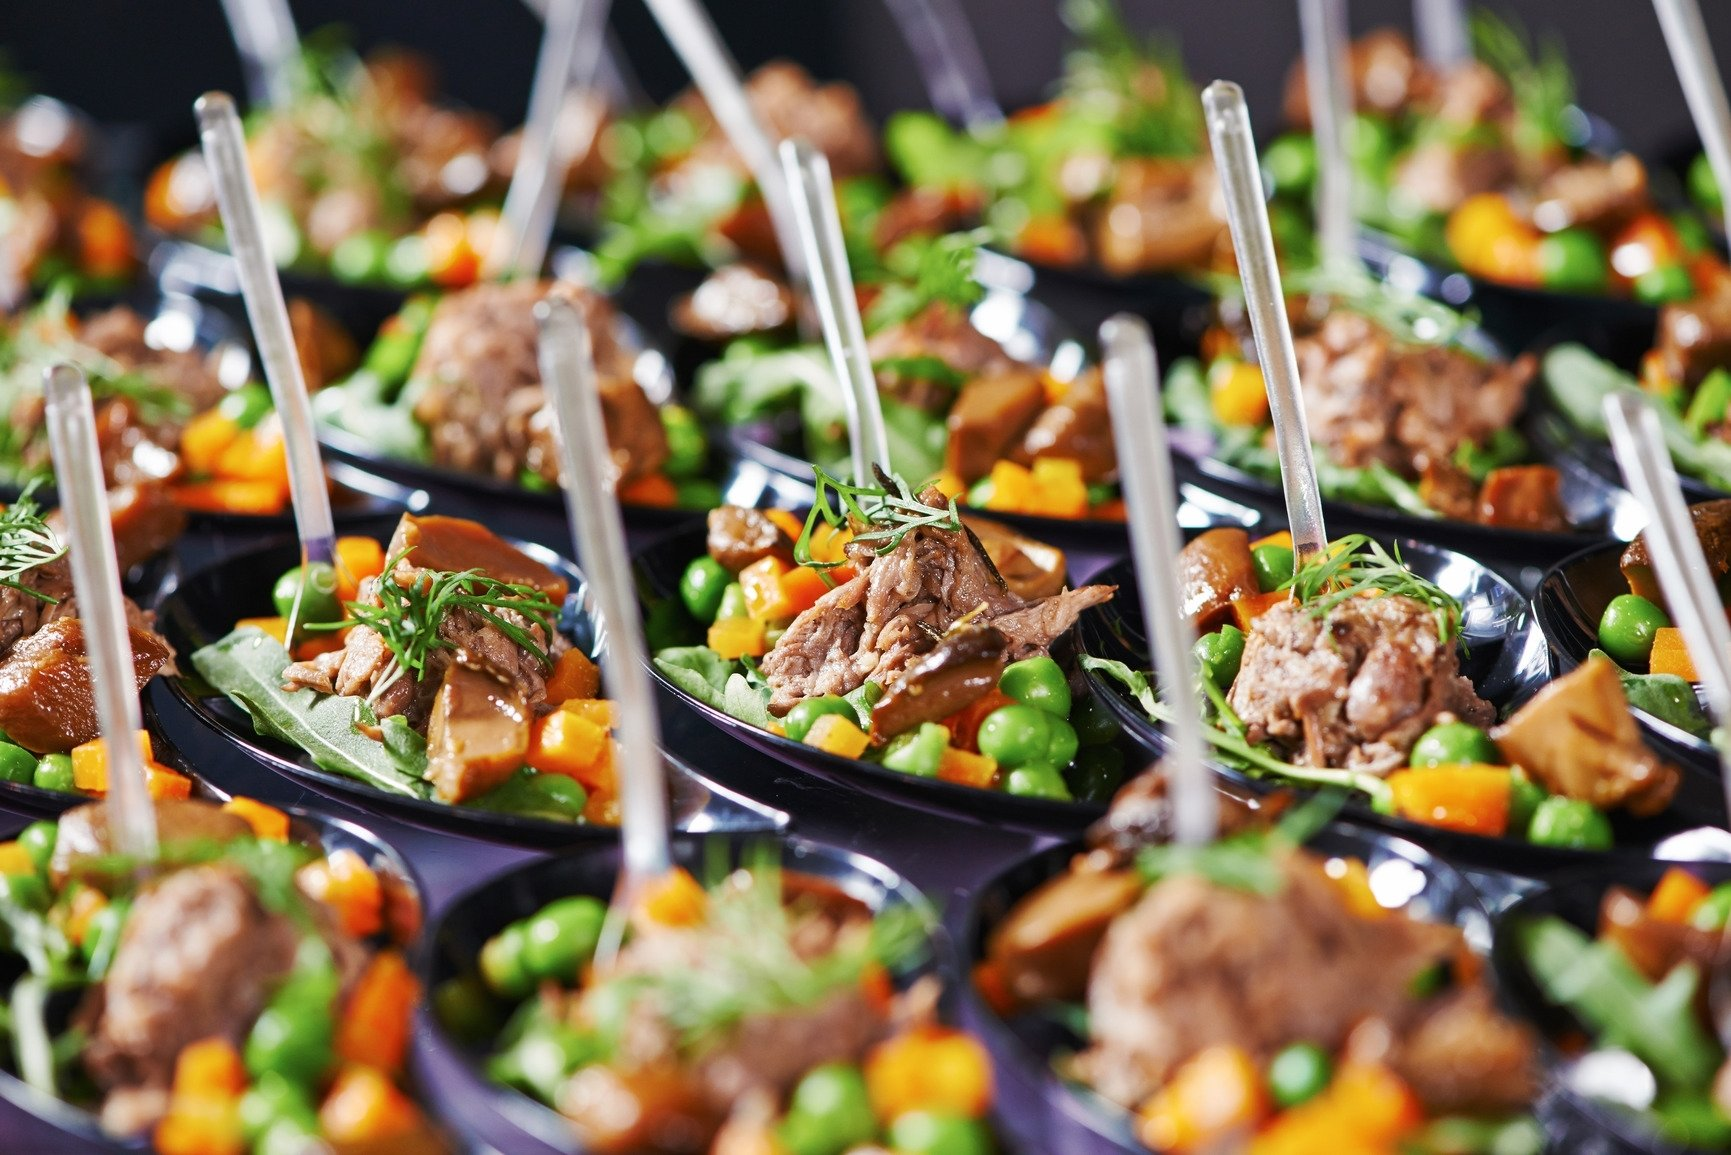 10 Most Popular Food Ideas For Large Parties 90 food ideas for large groups the 25 best large group meals 2020